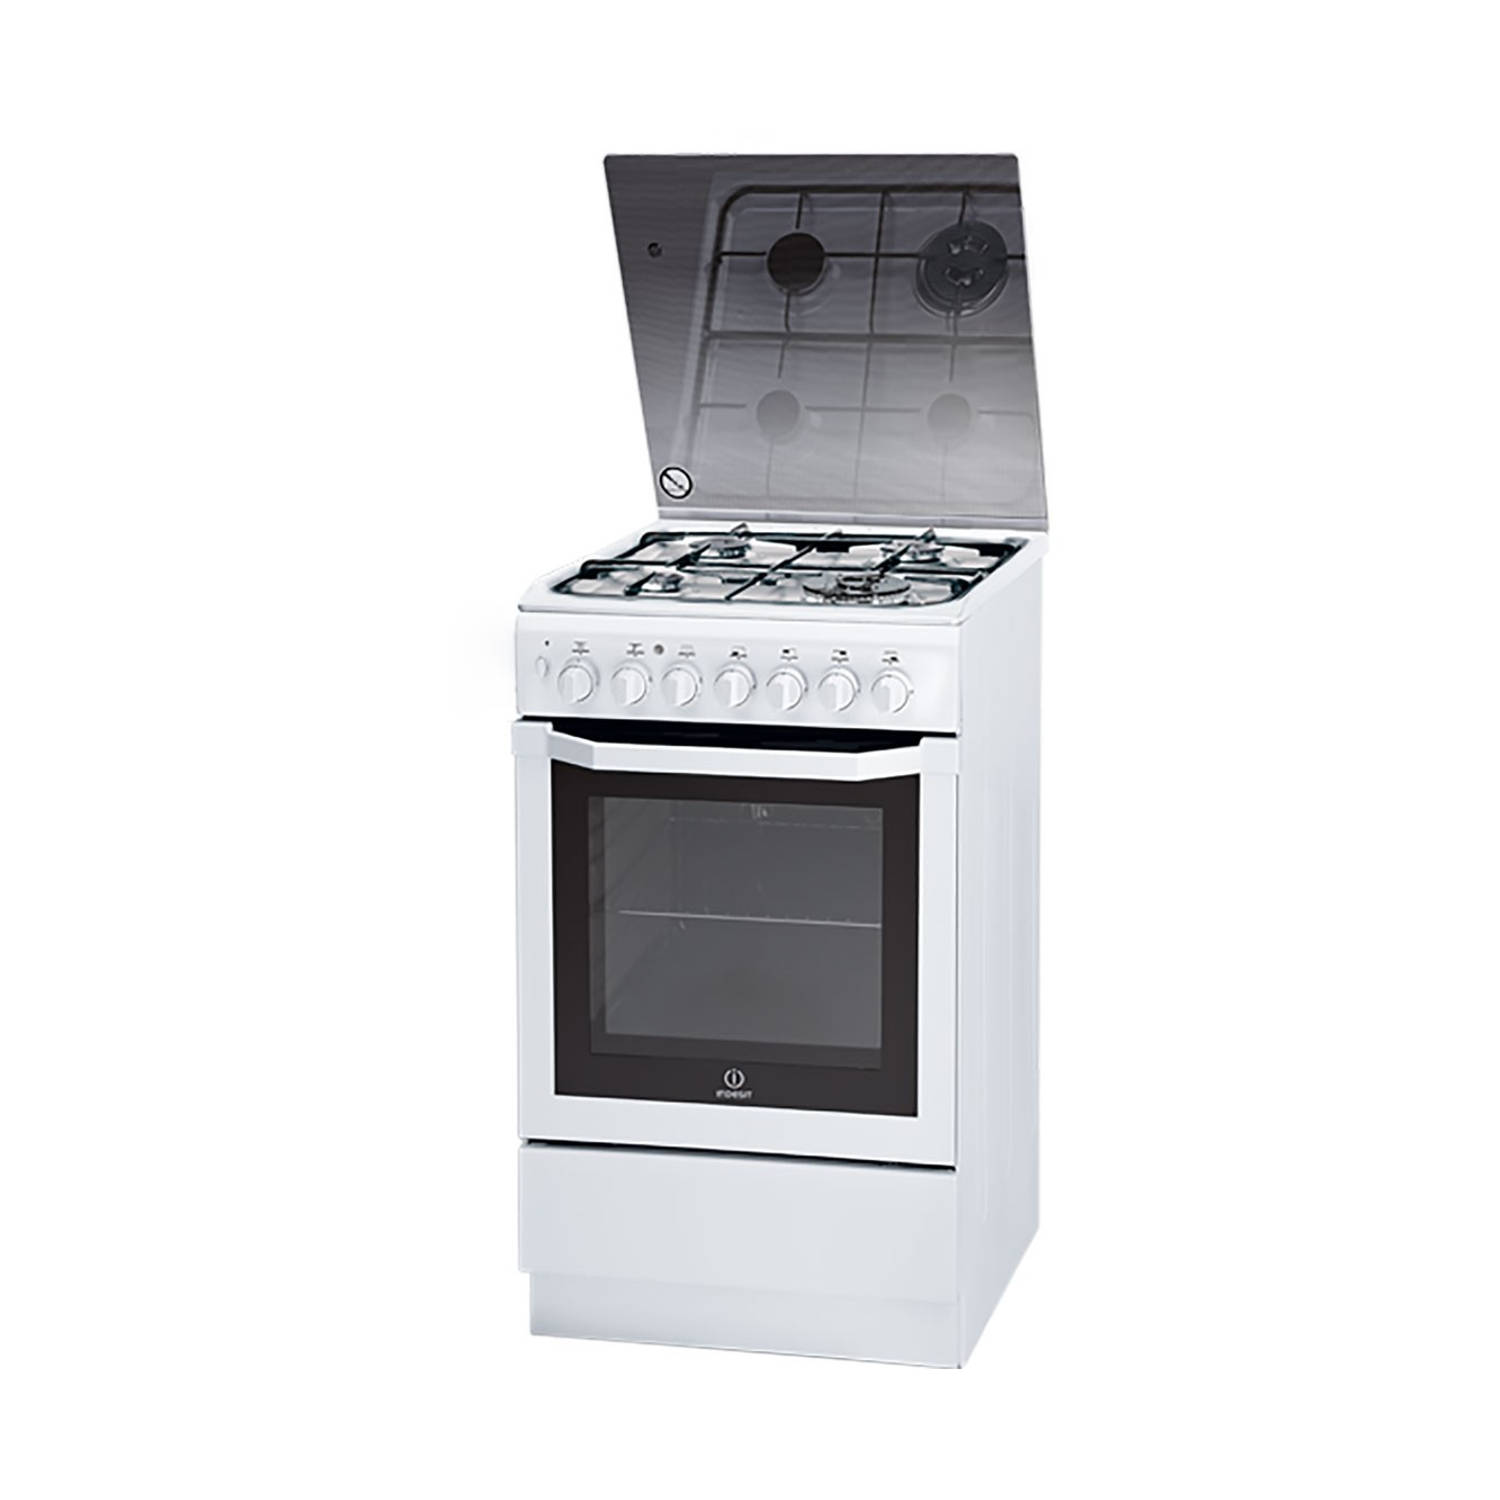 Indesit I5TMH2AG(W)/NL fornuizen - Wit